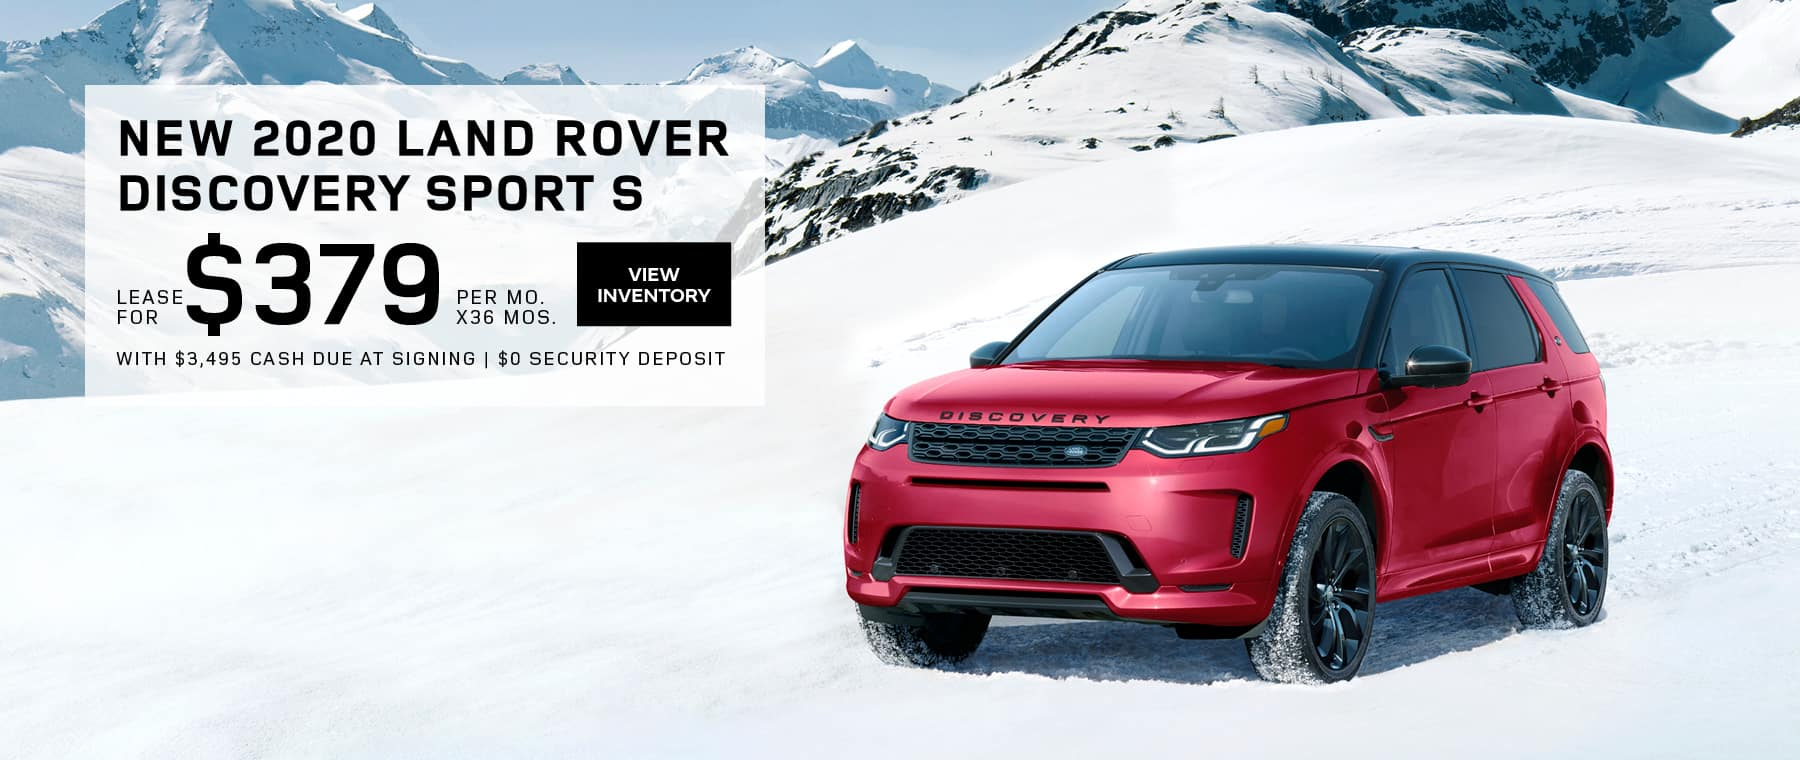 Land Rover Hinsdale Discovery Sport S